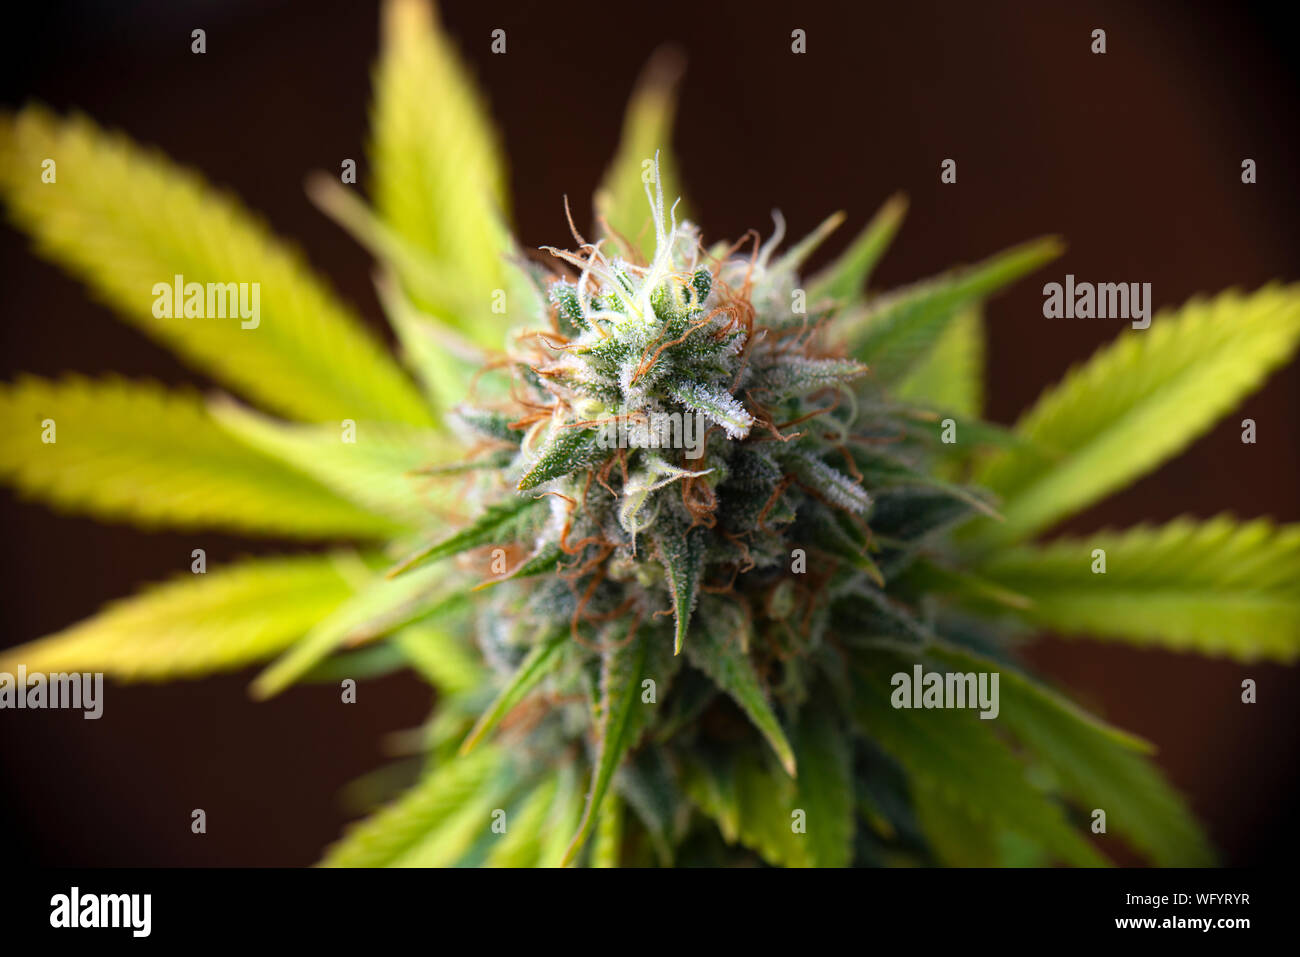 Detail of cannabis flower (white critical strain) growing indoors - medical marijuana cultivationc oncept Stock Photo